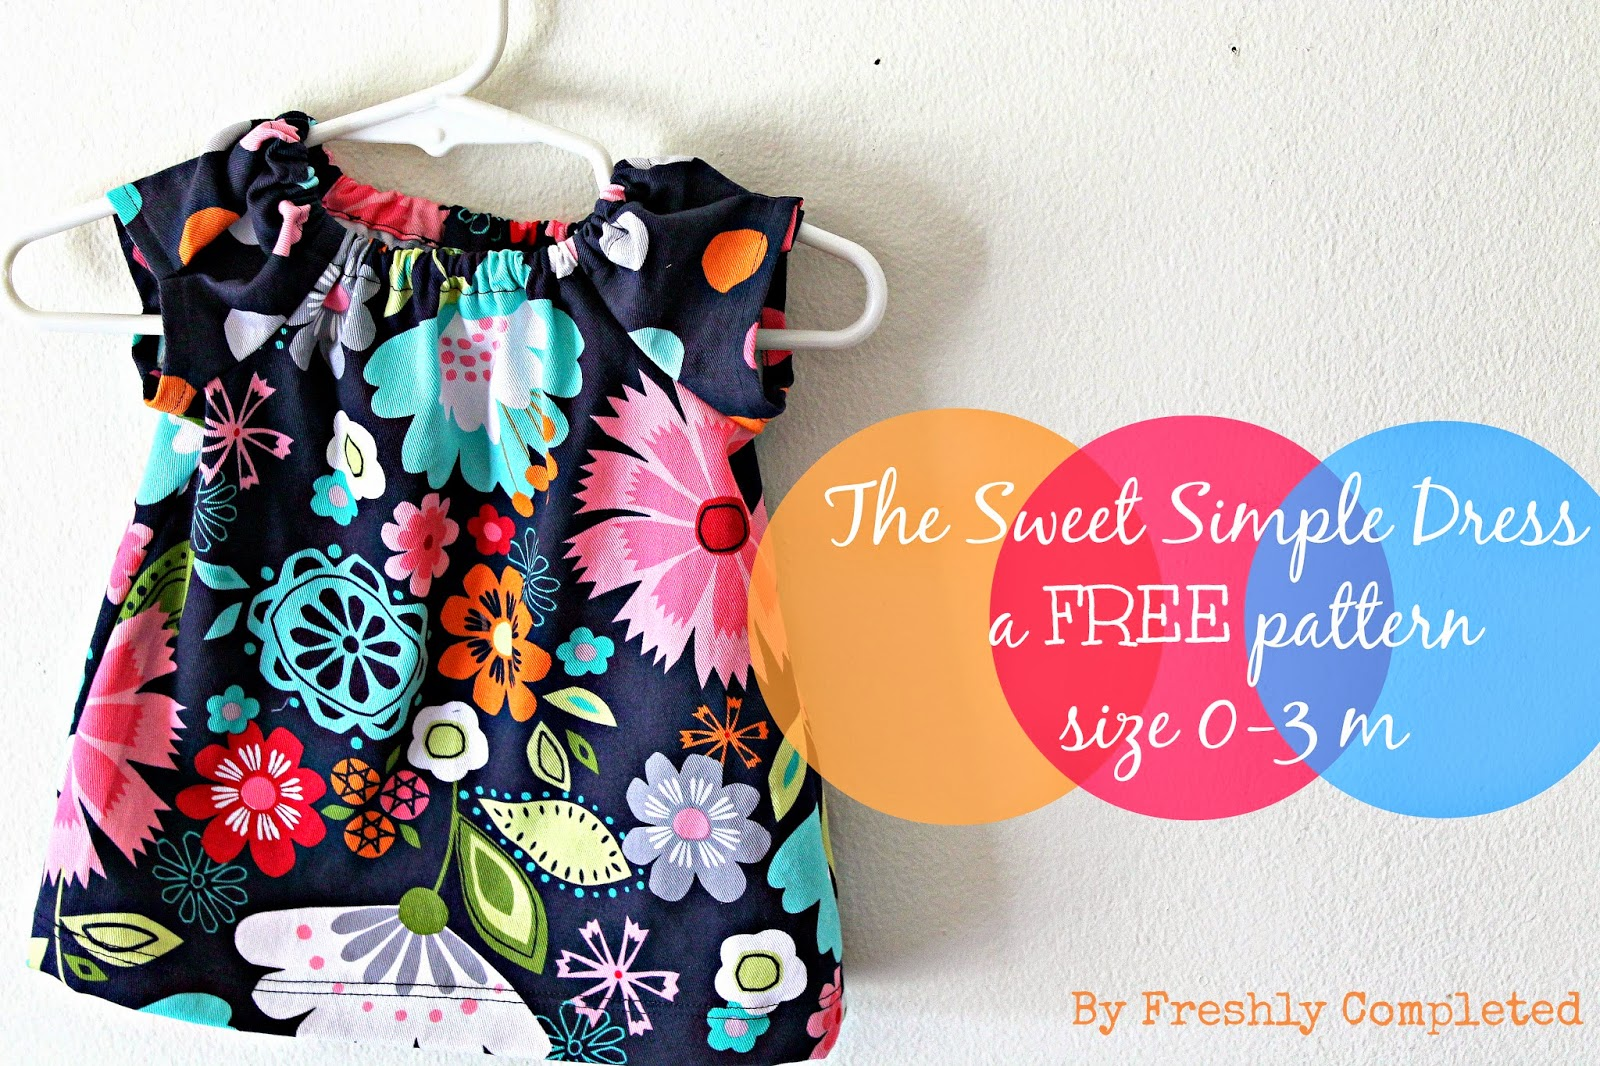 Freshly Completed: The Sweet Simple Dress -- a FREE Pattern size 0-3 m